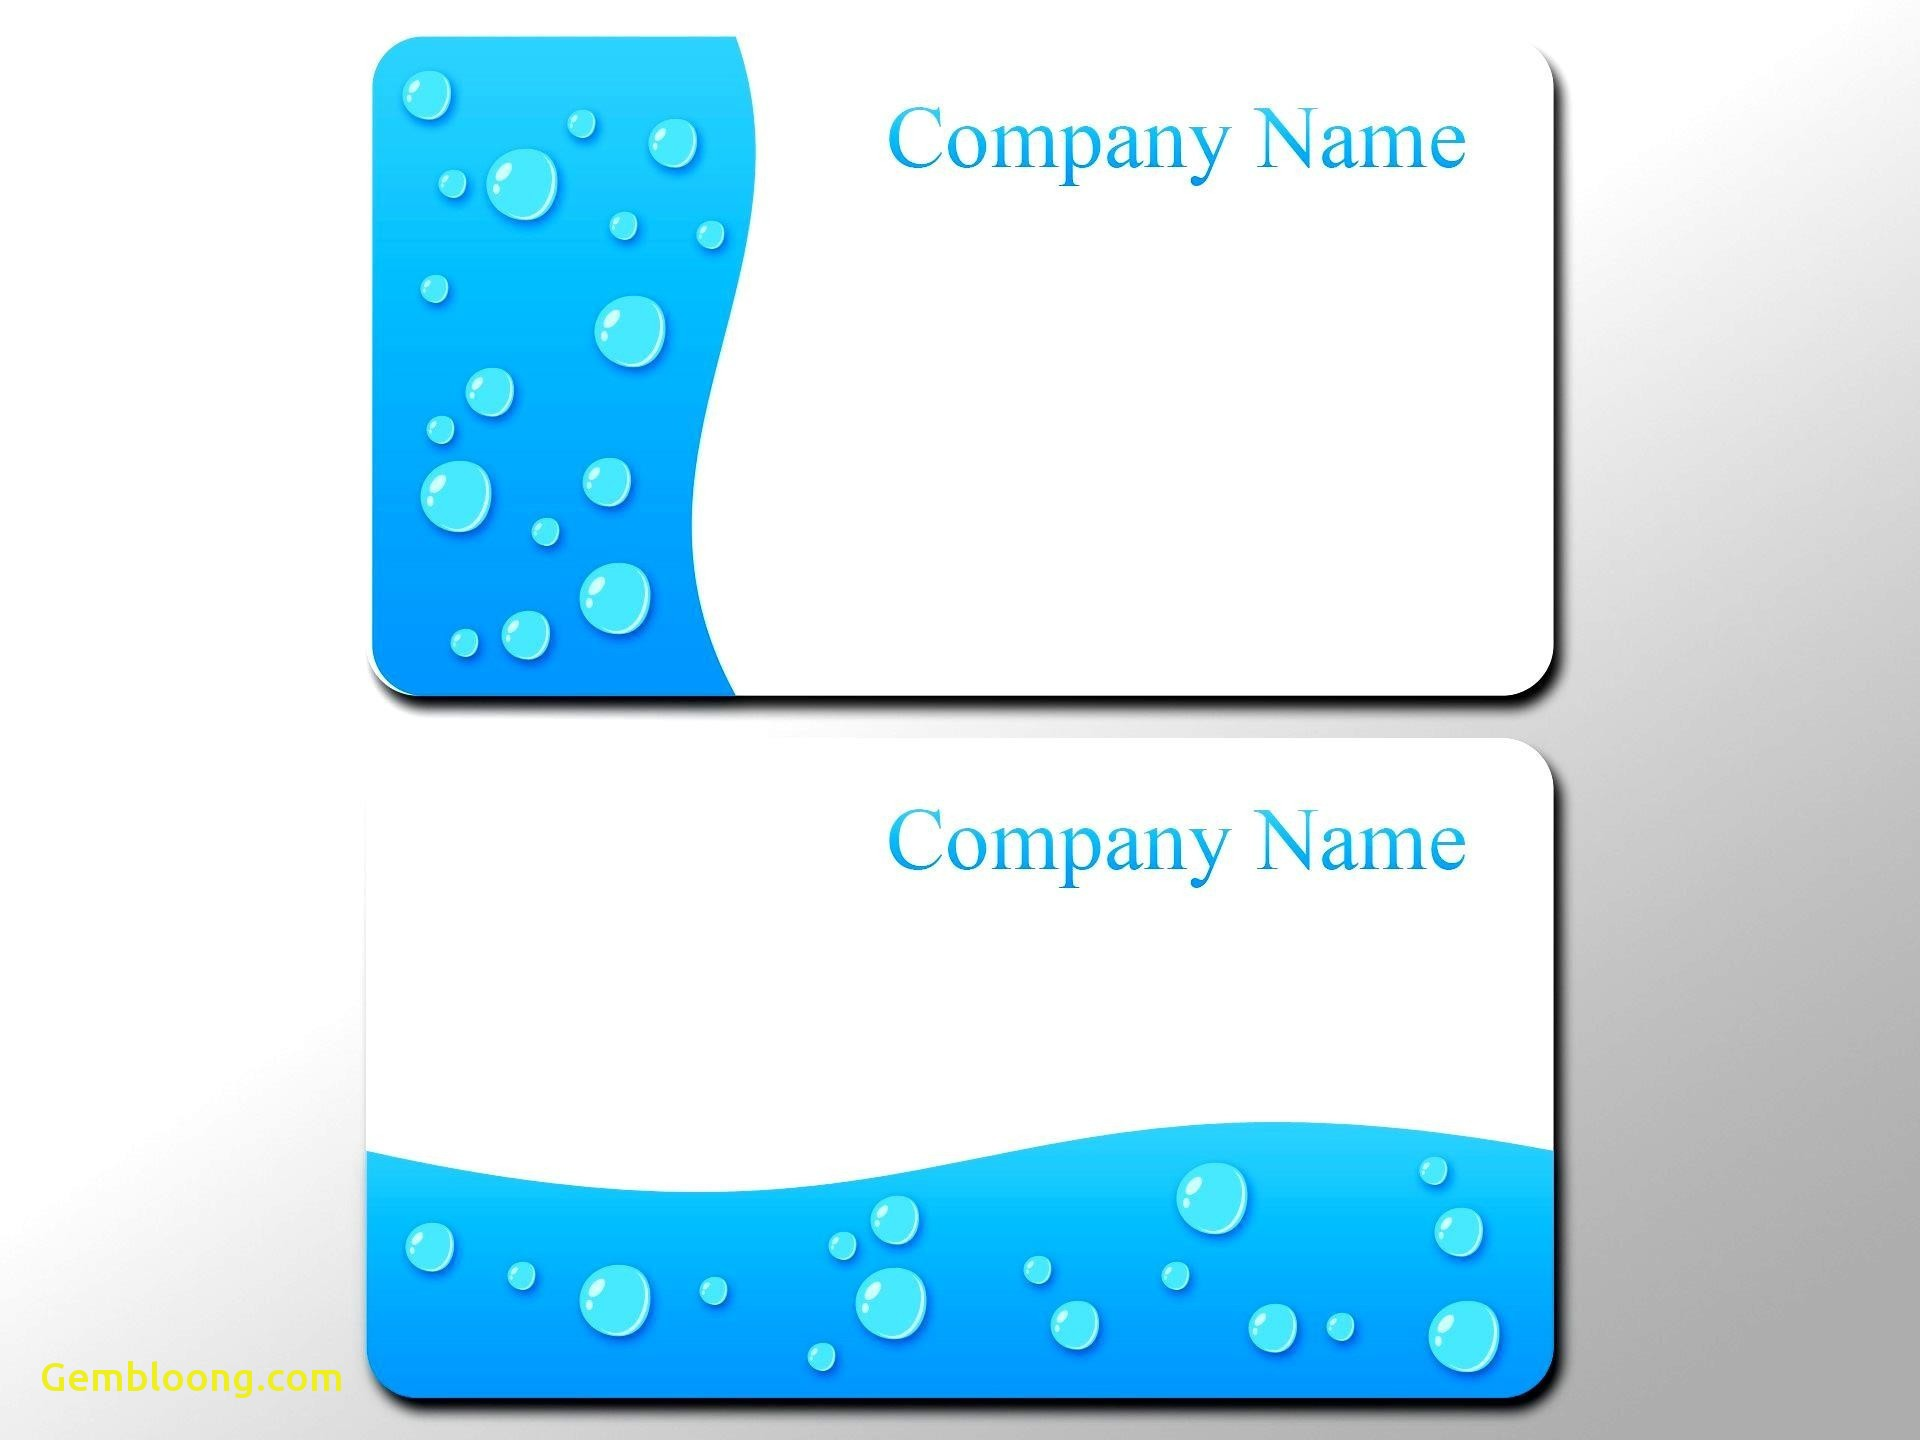 Business Card Photoshop Template Psd Awesome 016 Business.